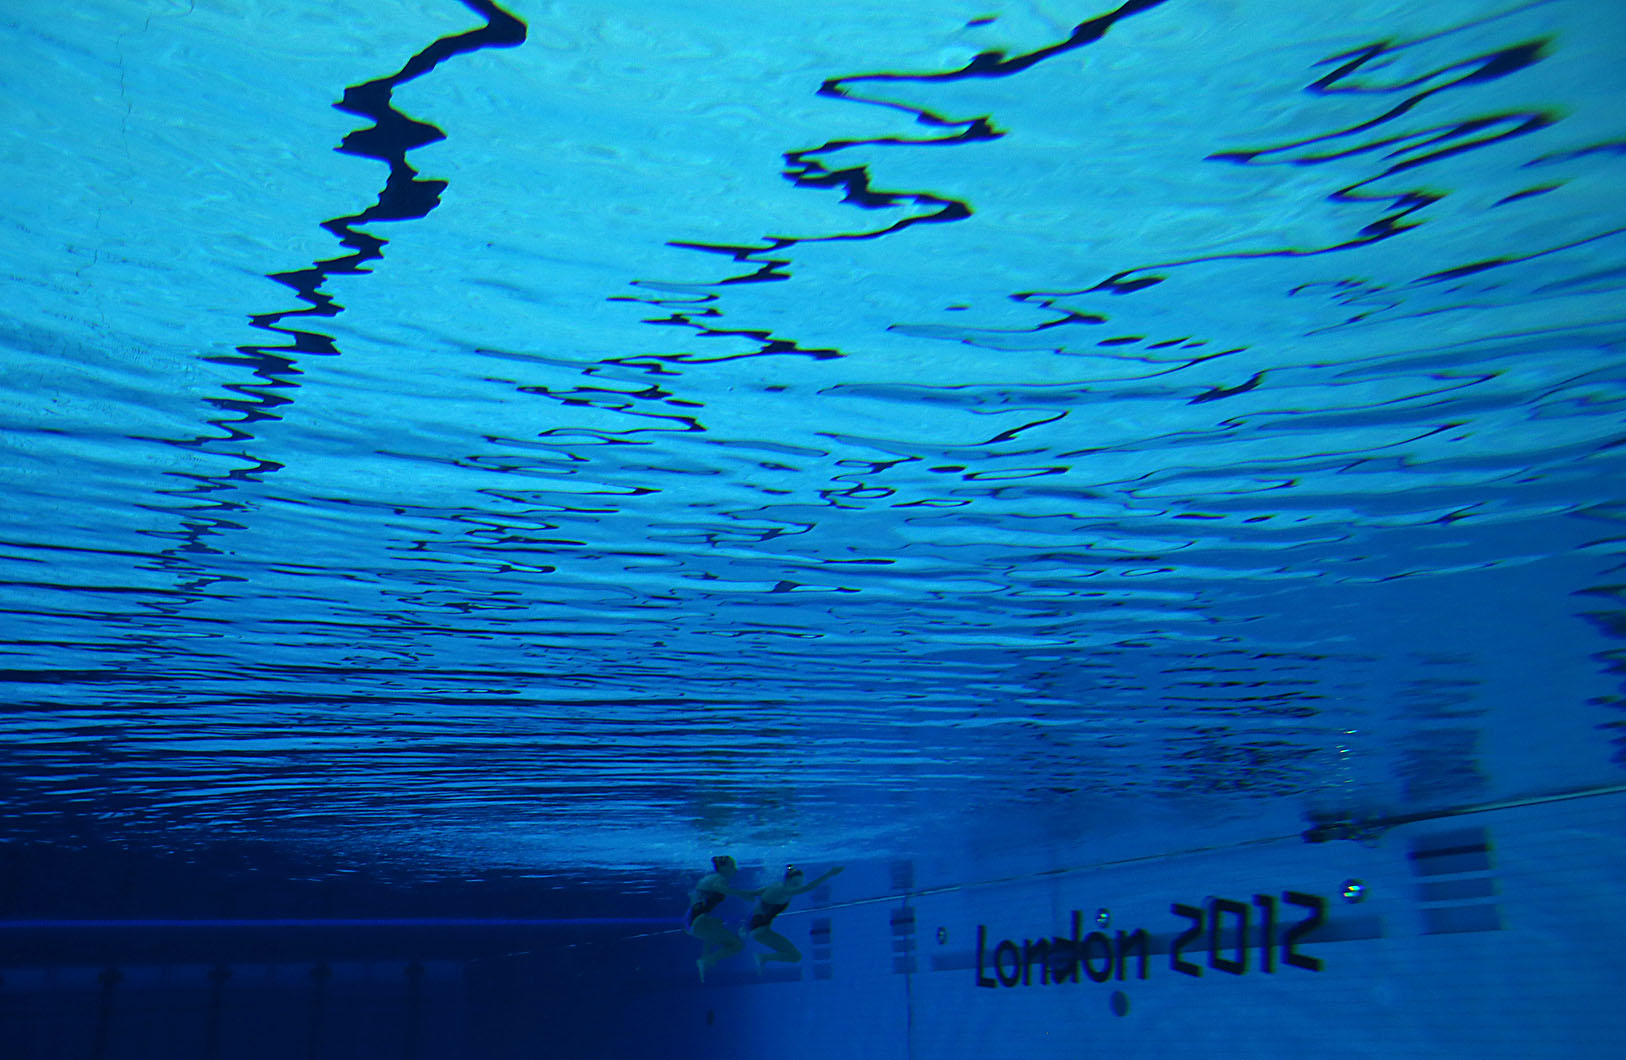 london olympics day jed jacobsohn photography blog - Olympic Swimming Pool Underwater